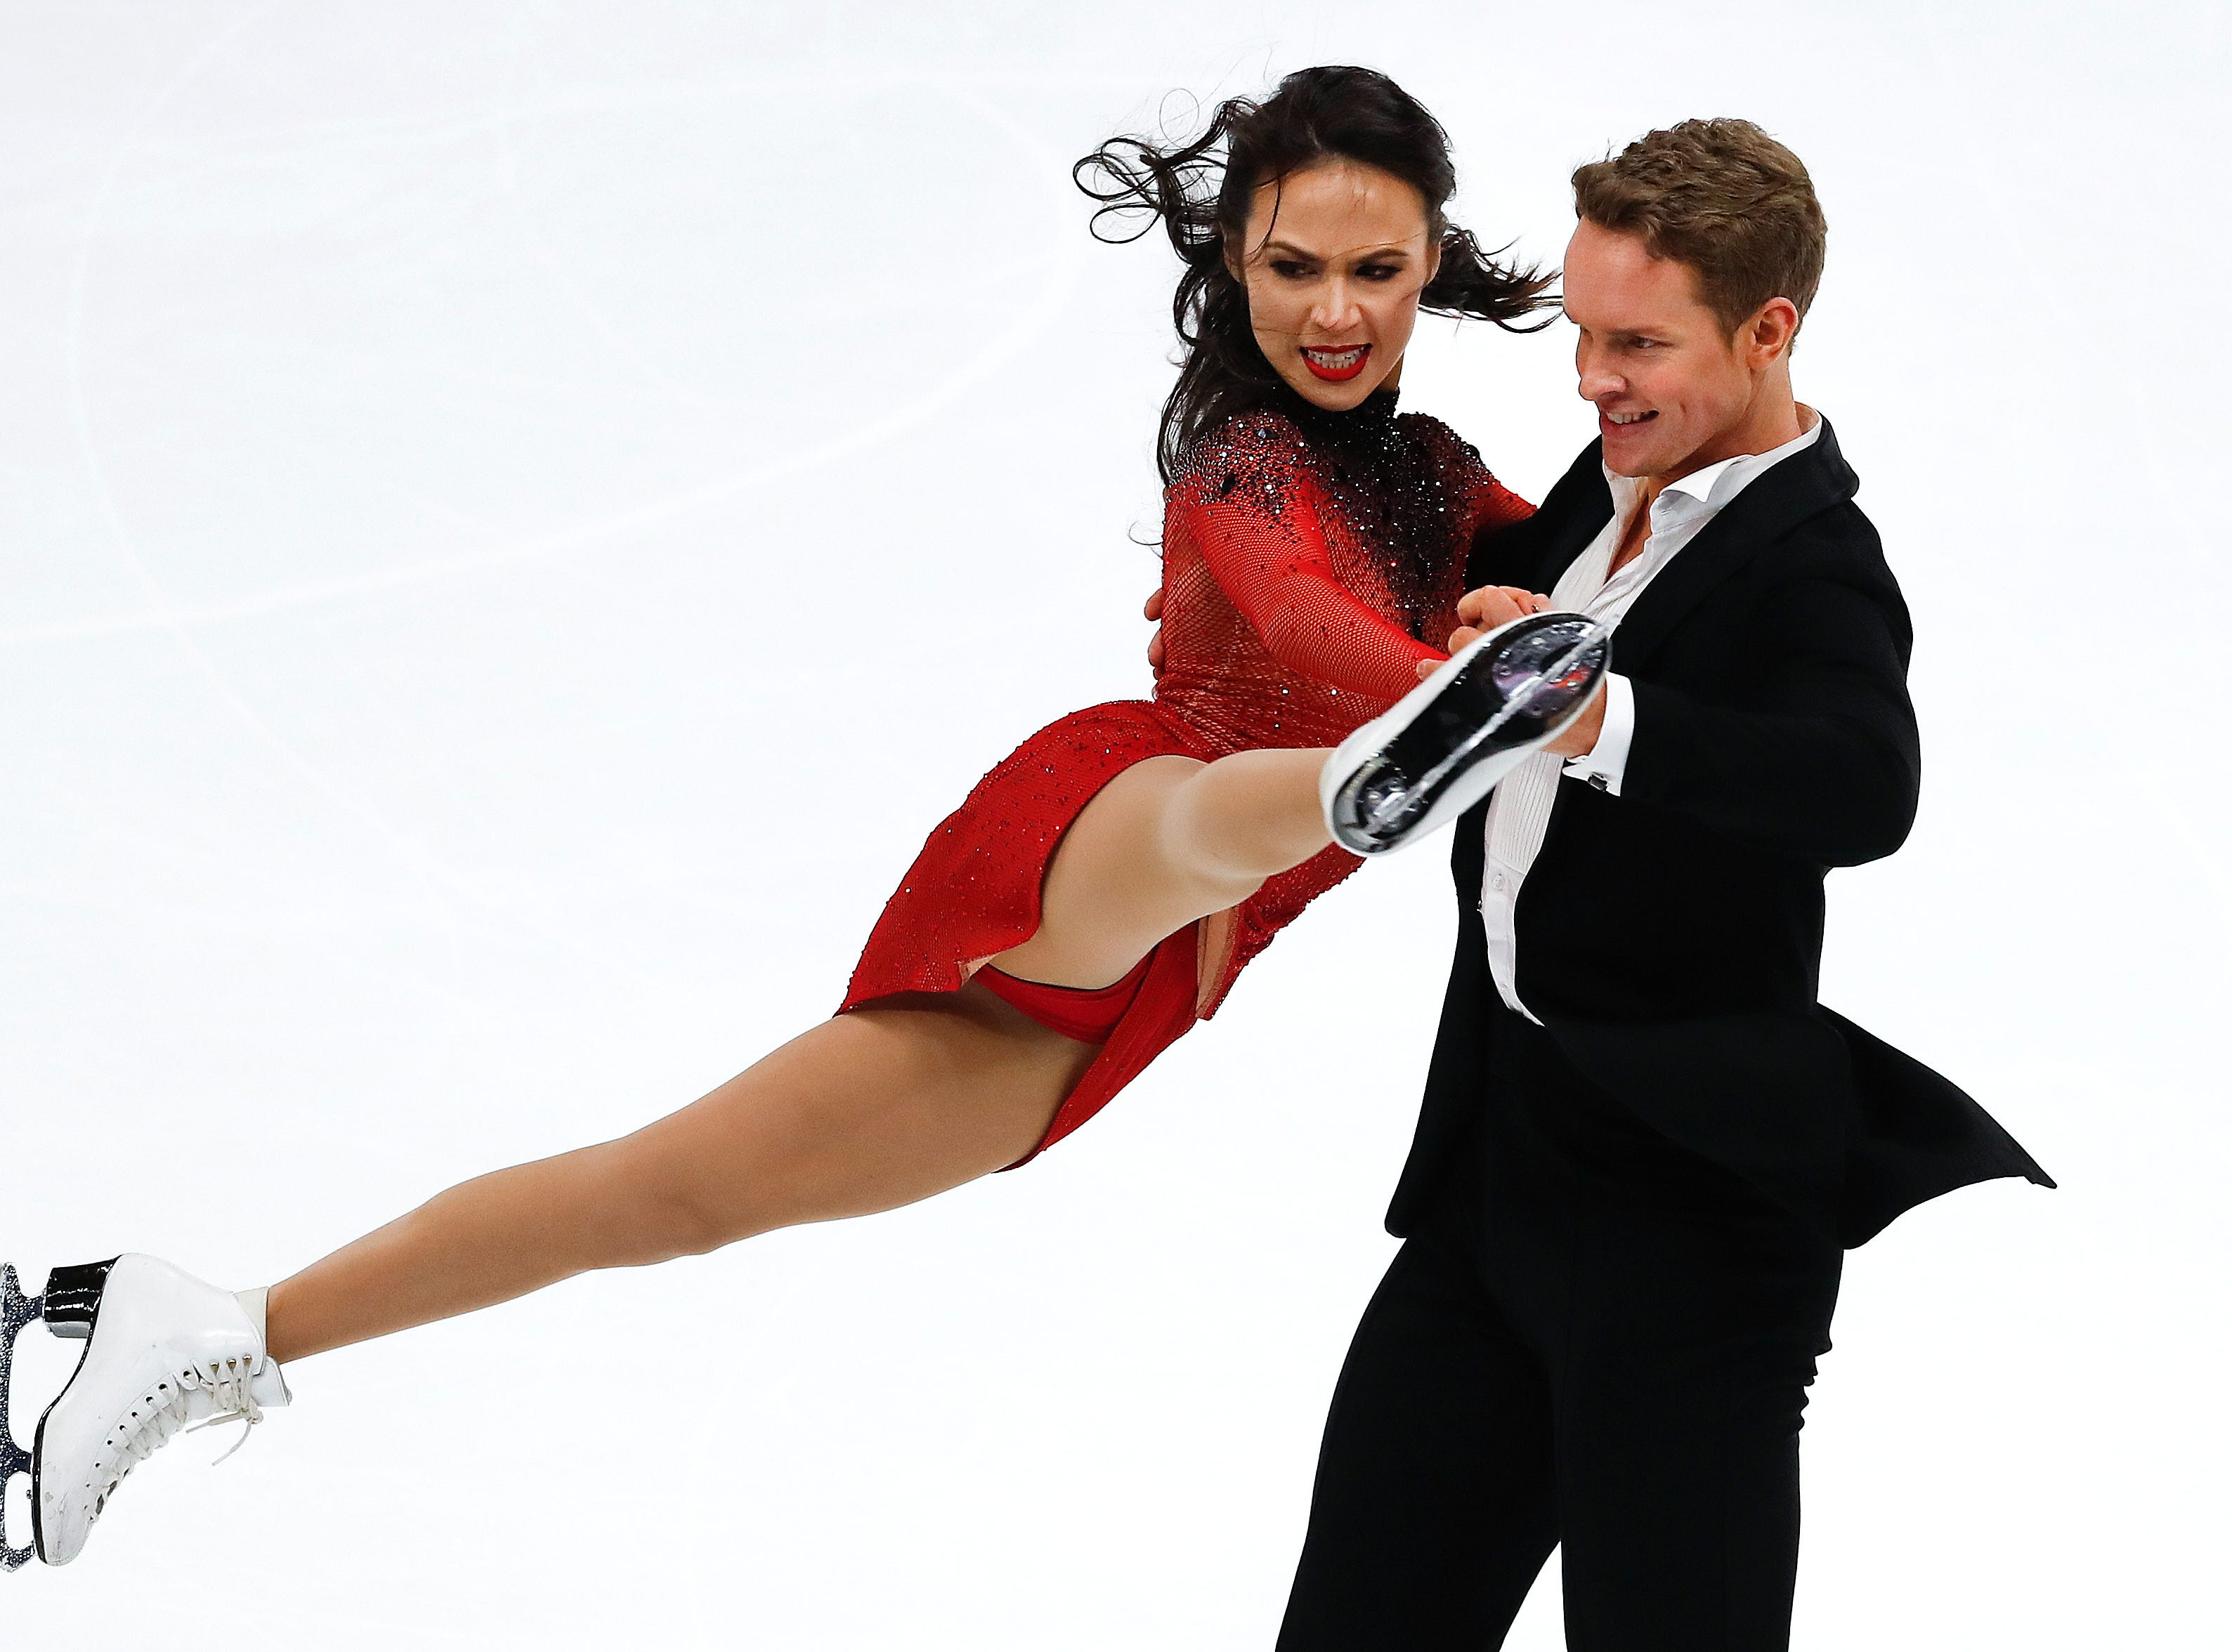 Taking second place, Madison Chock and Evan Bates perform their rhythm dance program at the U.S. Figure Skating Championships, Friday.